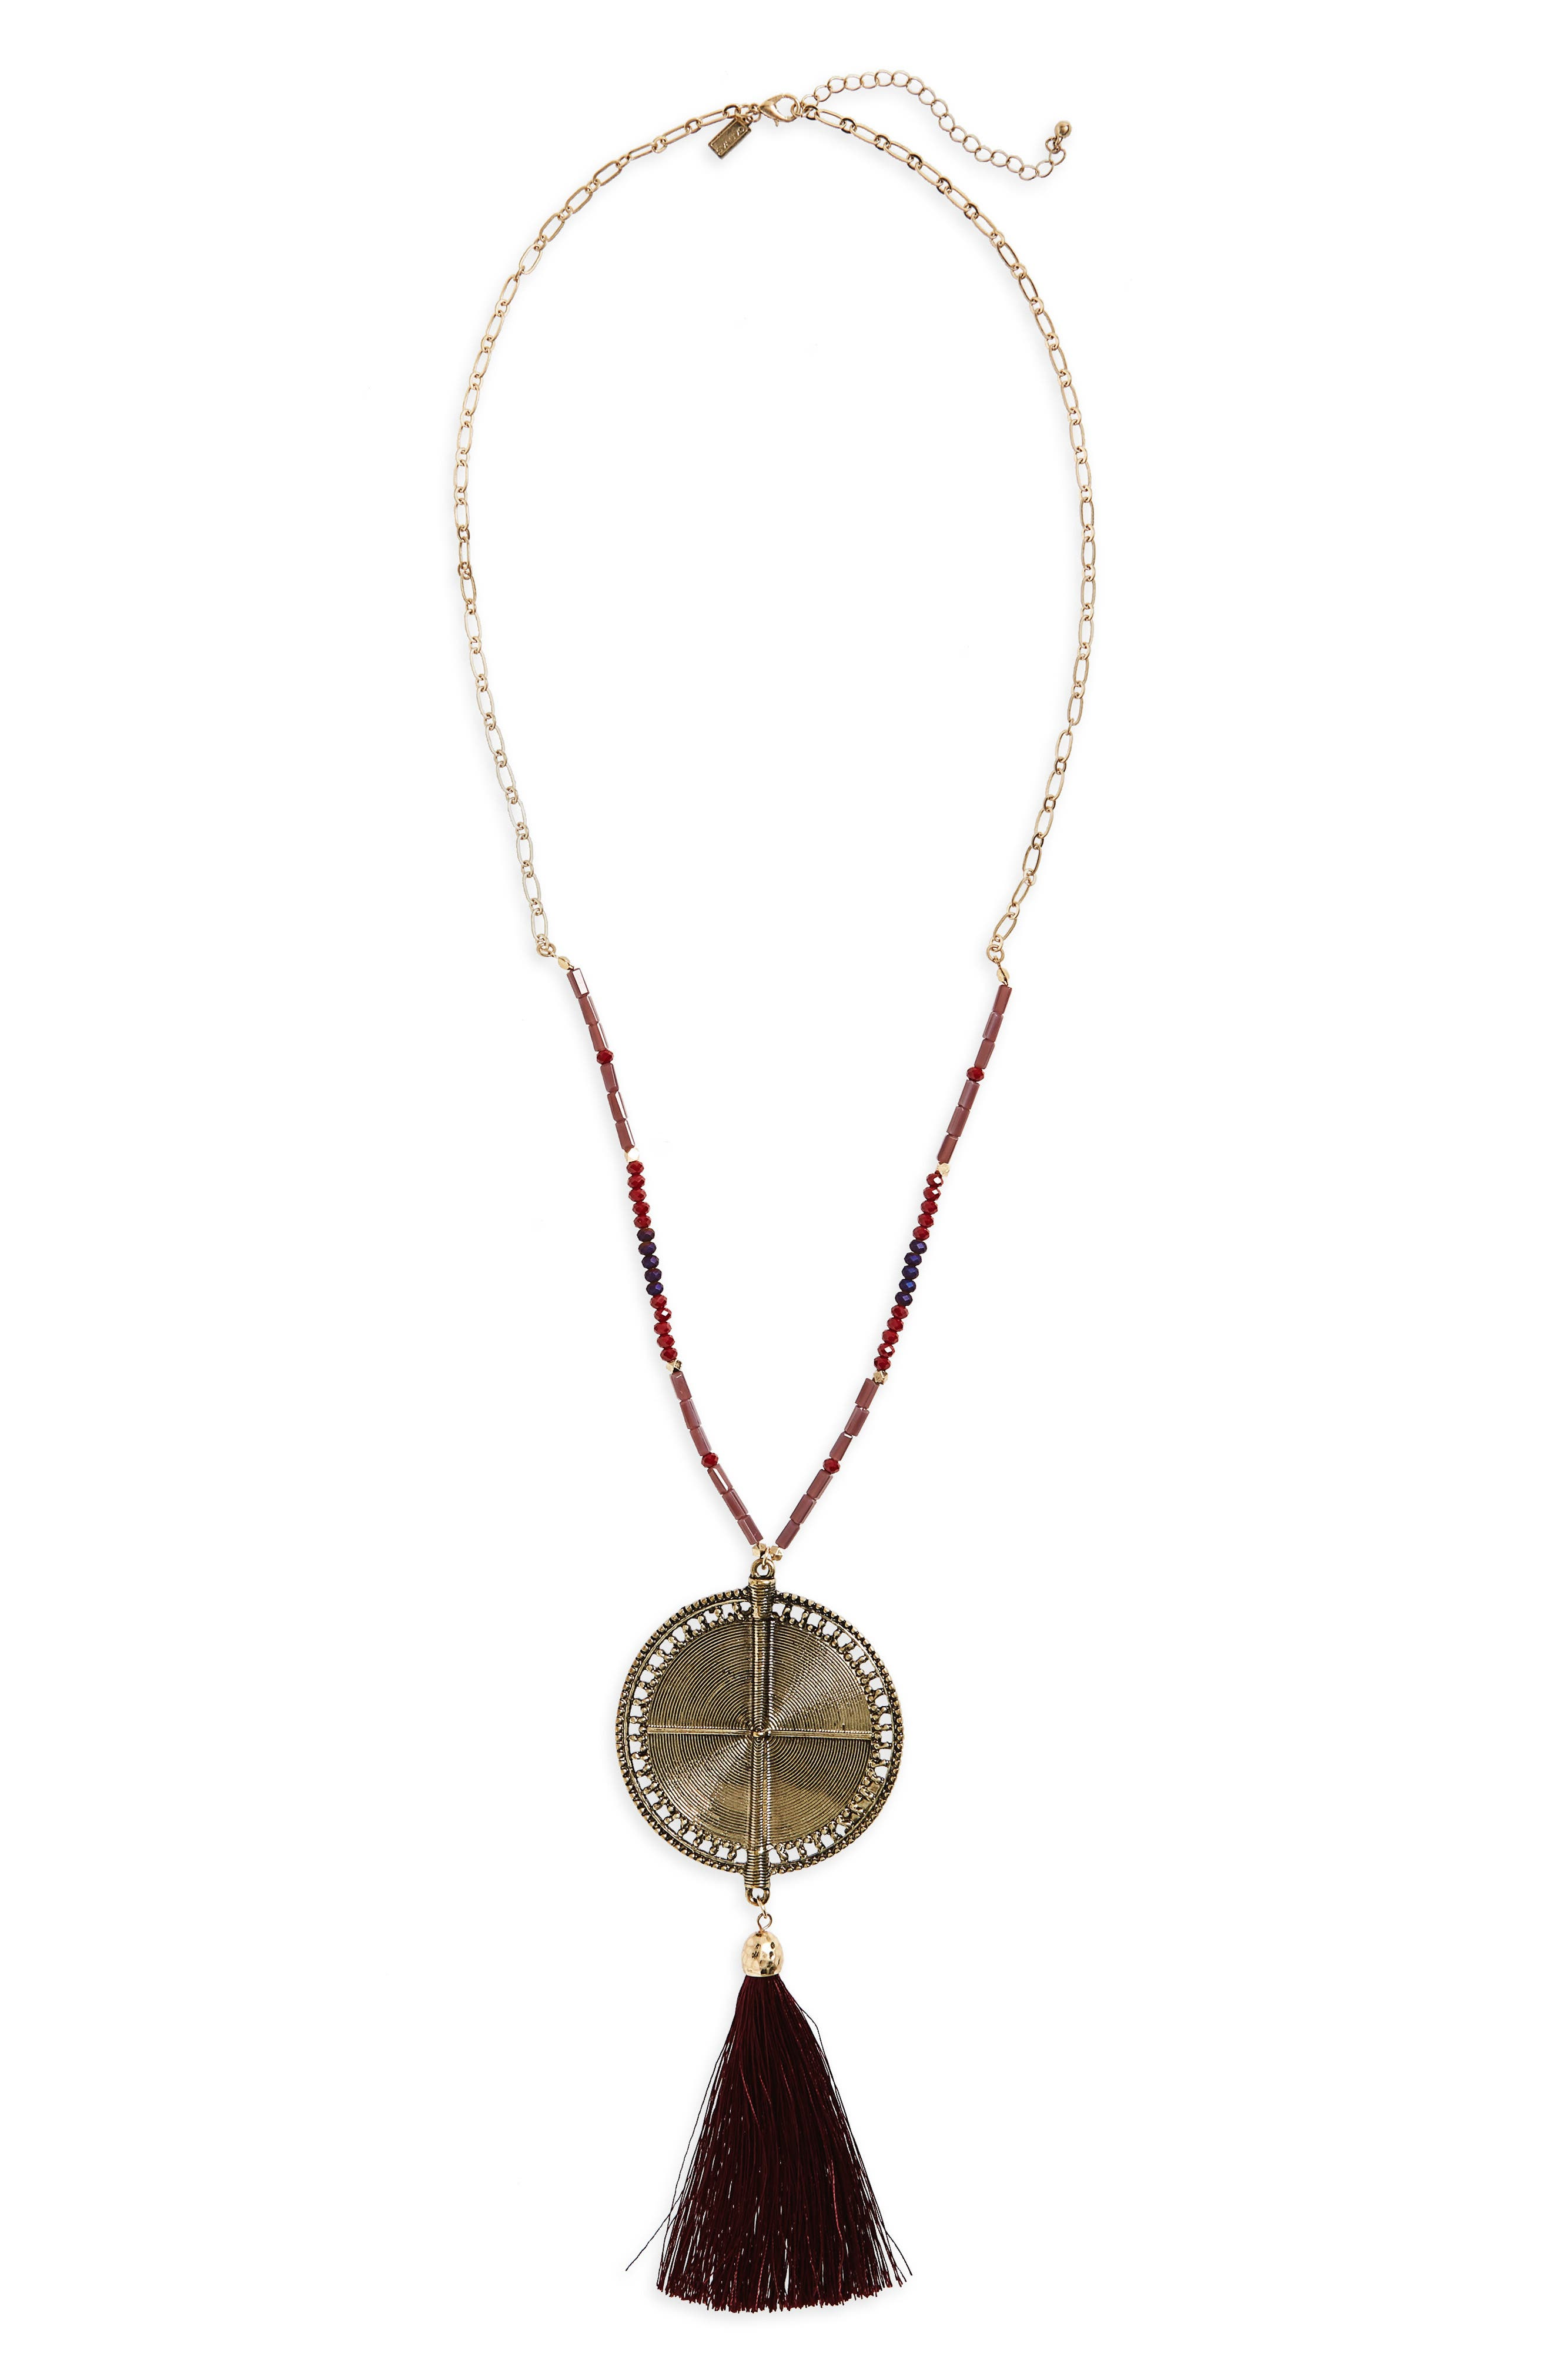 Medallion Pendant Necklace,                         Main,                         color, Burgundy